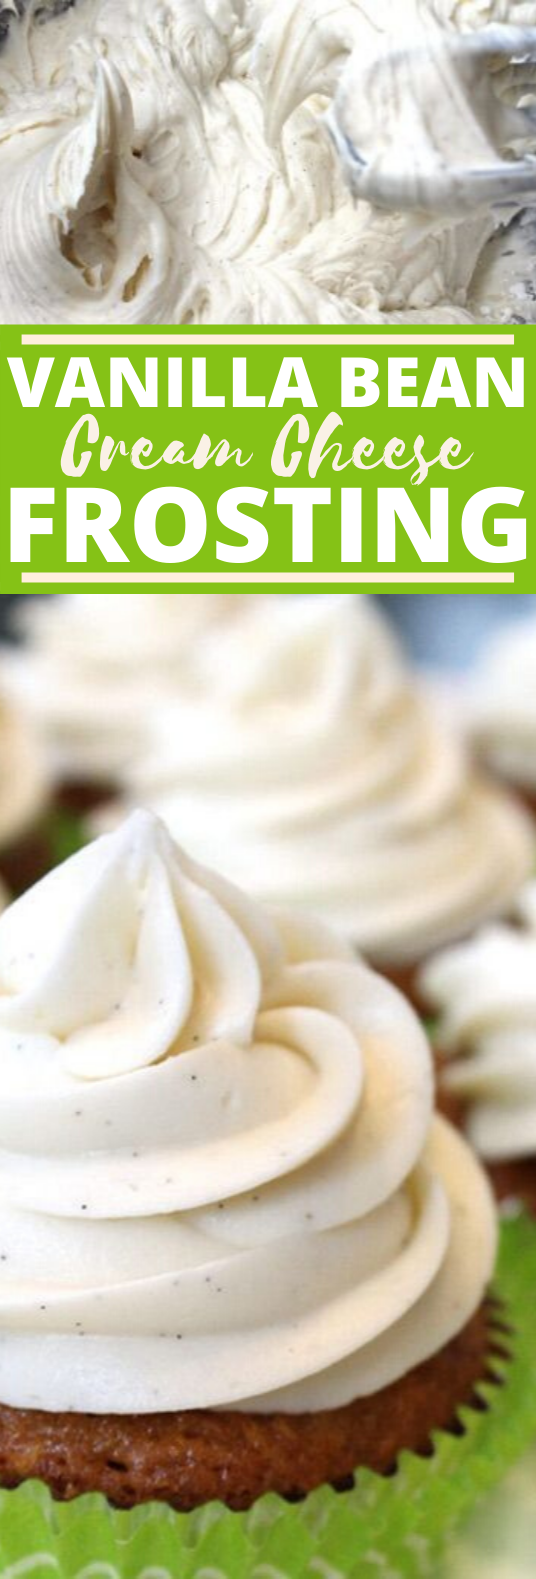 Vanilla Bean Cream Cheese Frosting #desserts #cakes #frosting #cookies #baking